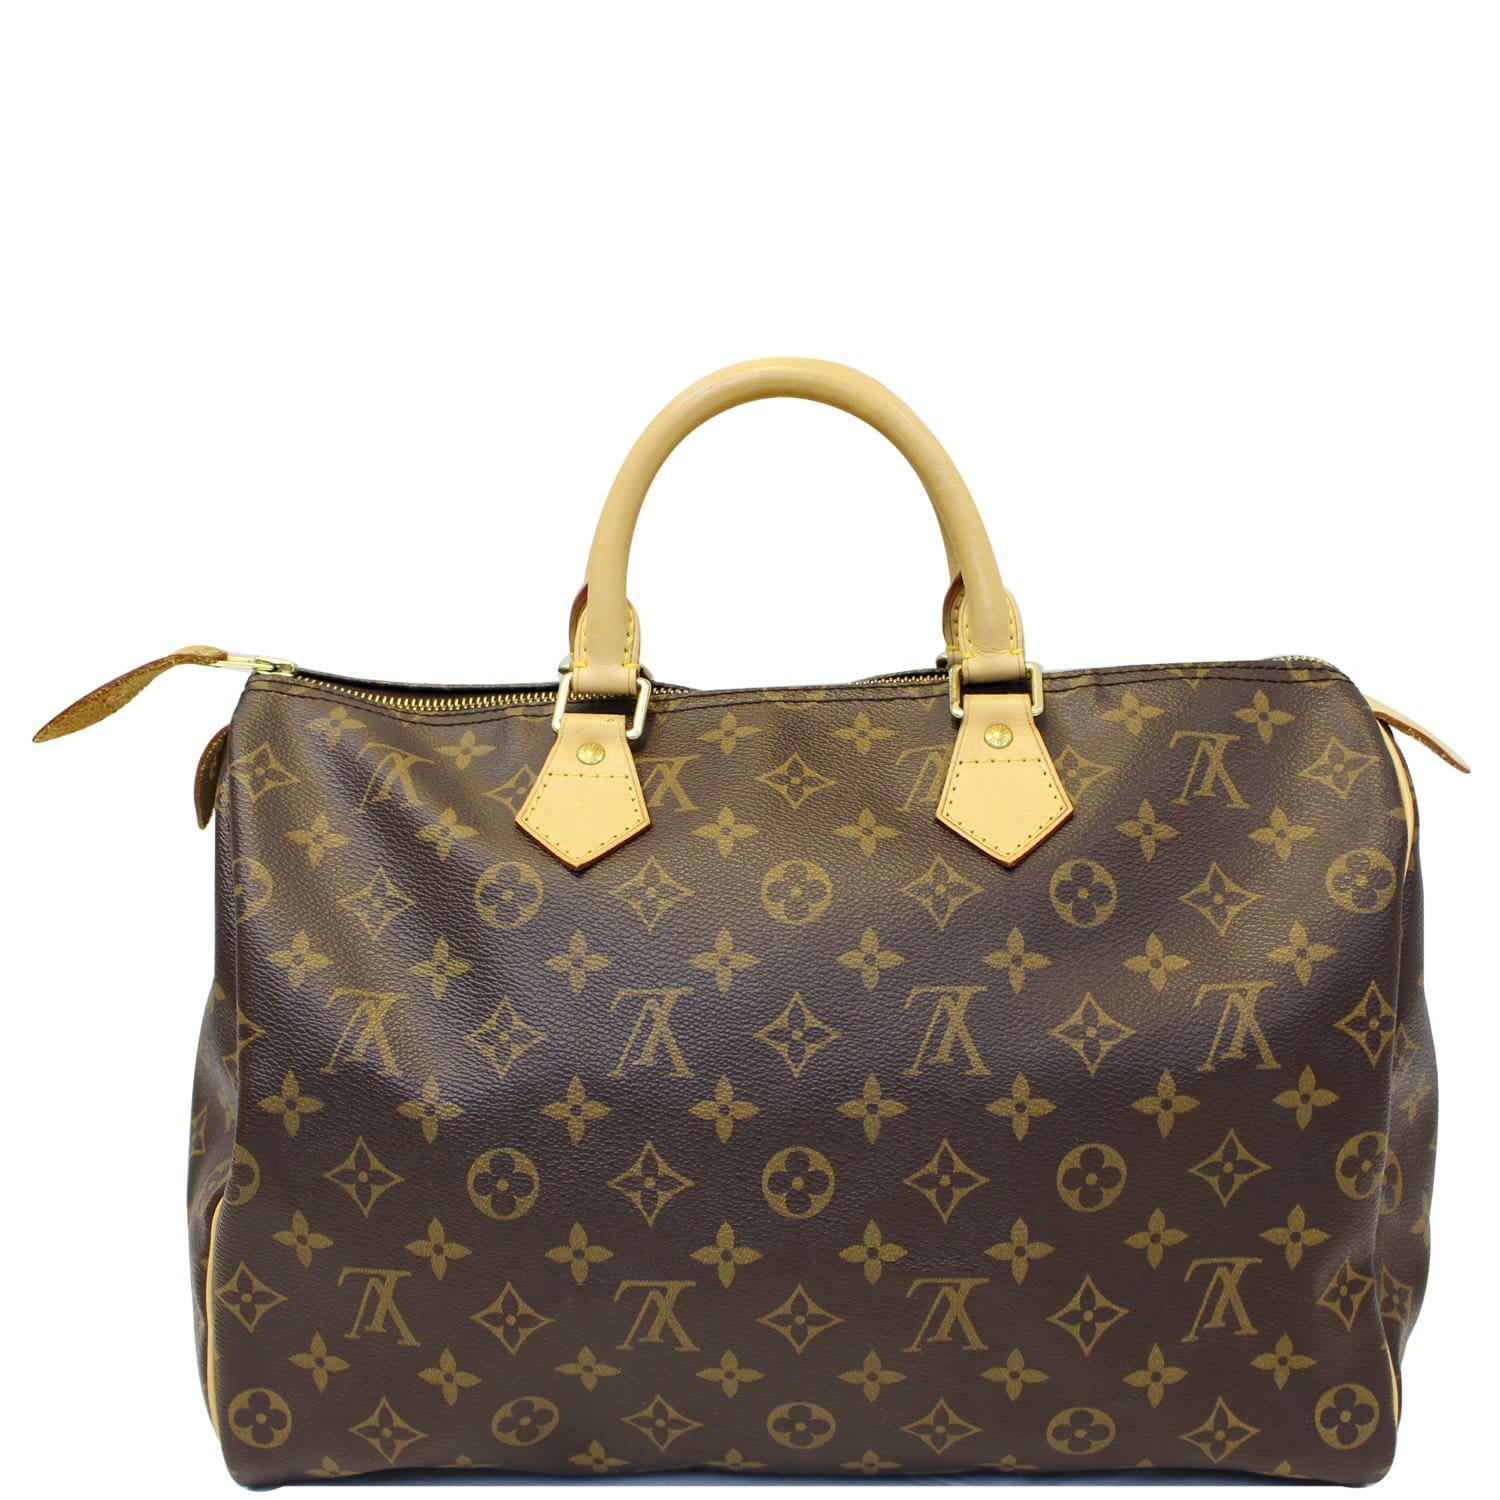 d20ed14a7135 LOUIS VUITTON Speedy 35 Monogram Canvas Satchel Bag-US